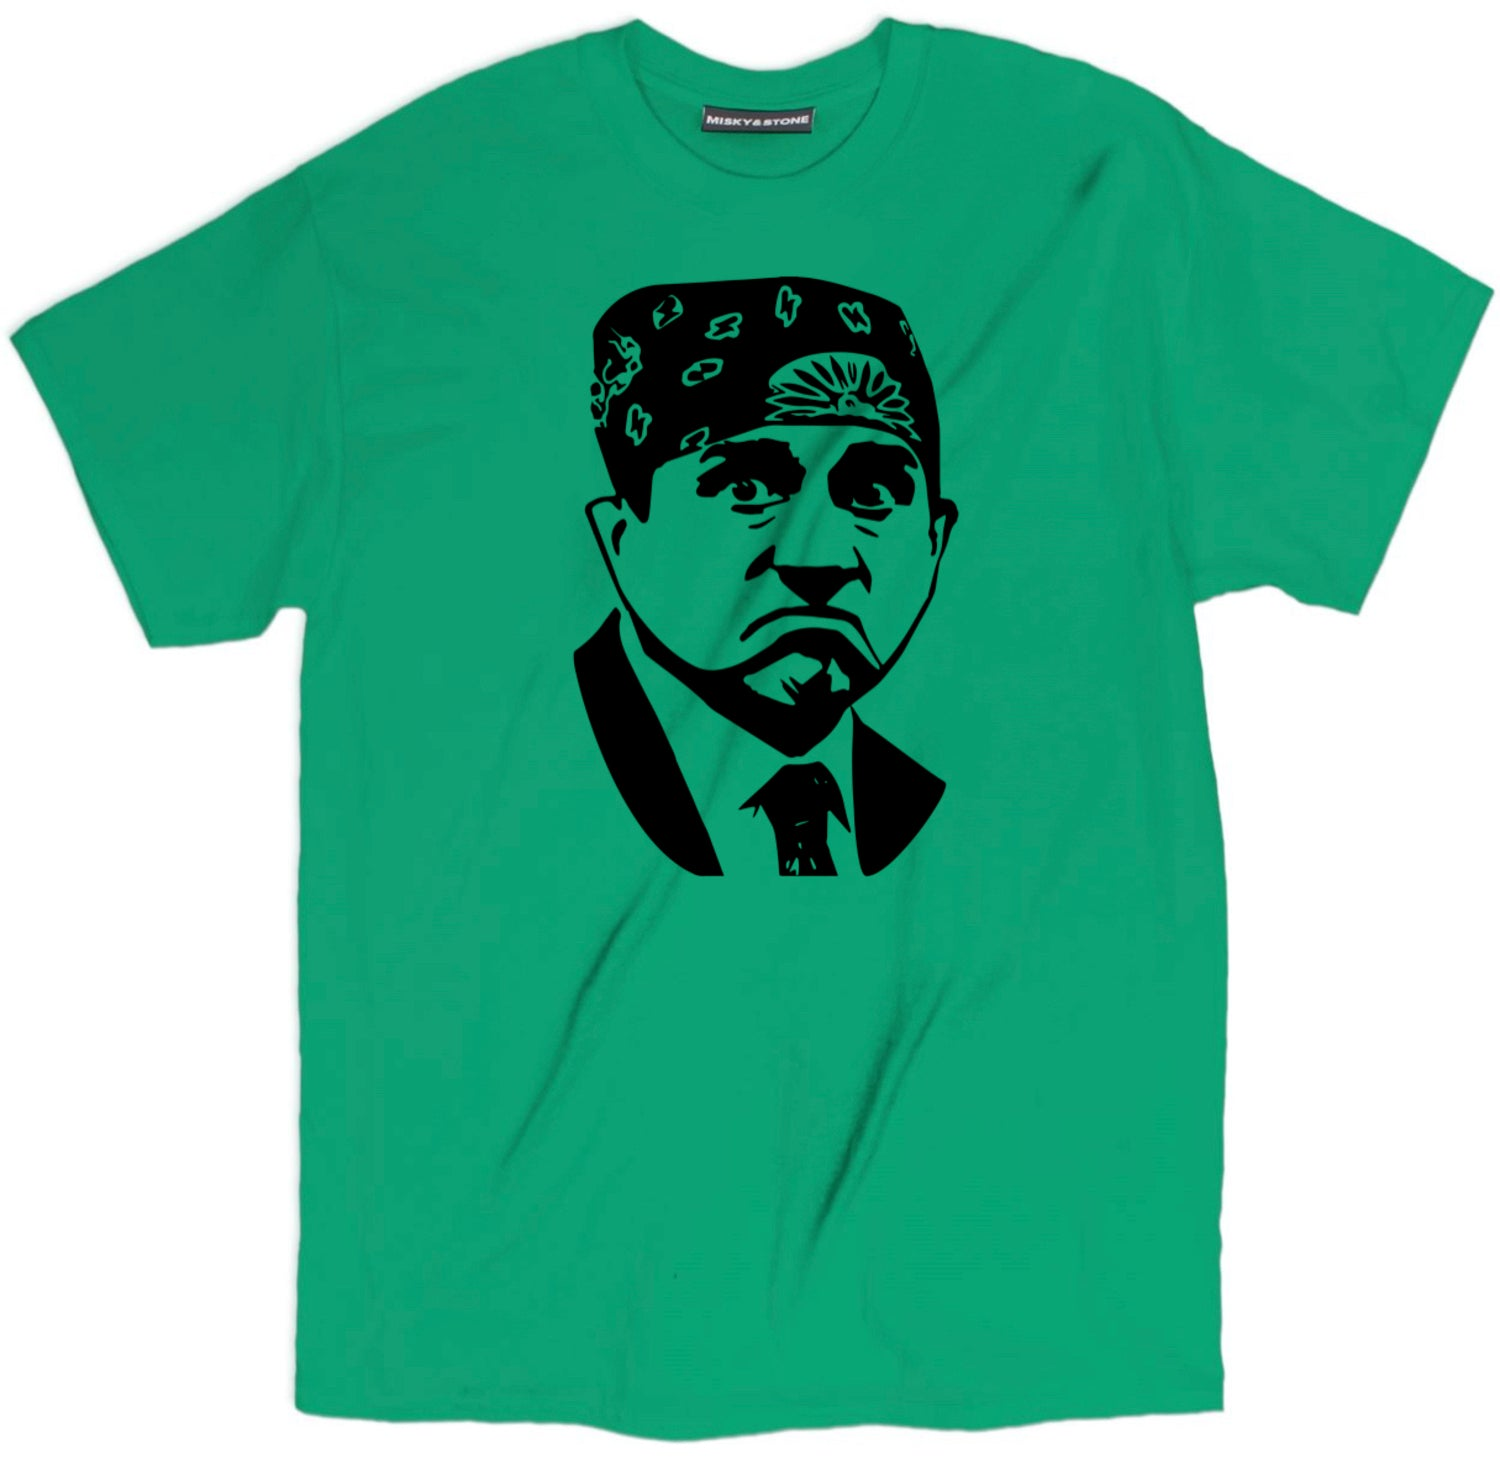 Free Prison Mike Sketch Tee